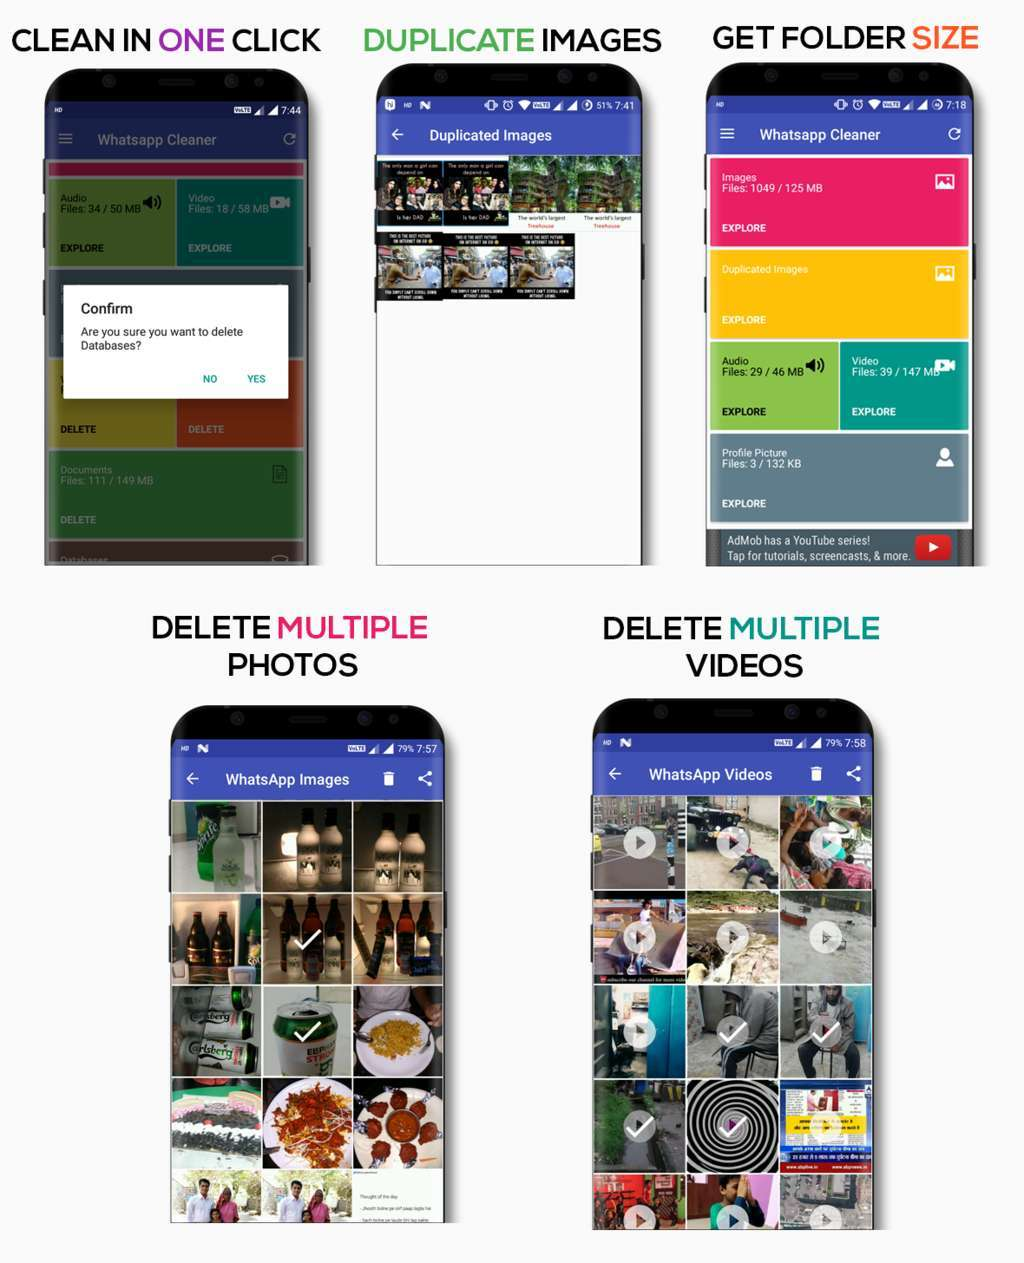 WhatsApp Cleaner(Duplicate Images/Videos+Backup+Admob Ads+Firebase) - 1